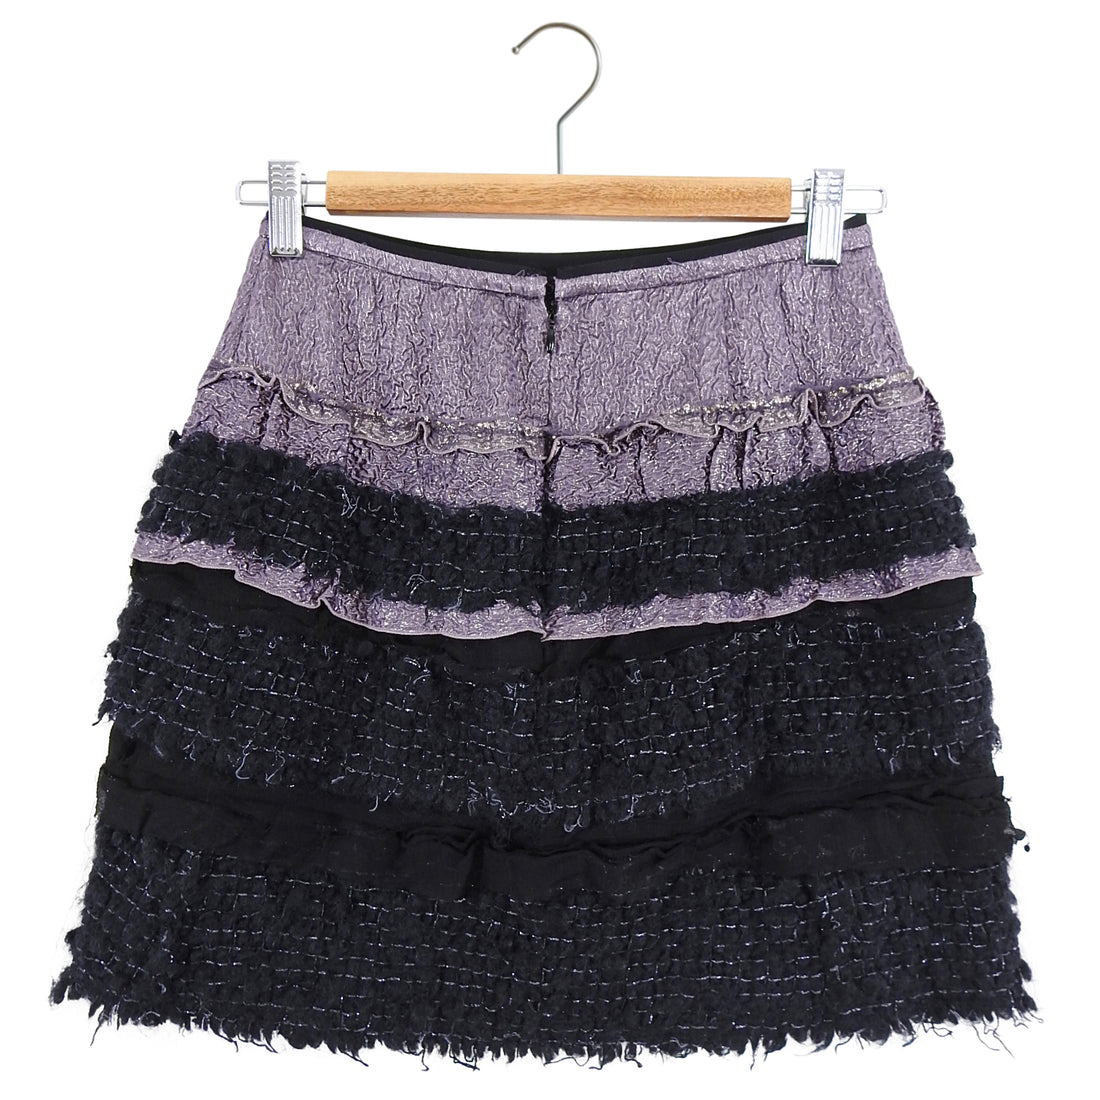 Nina Ricci Purple Shimmer and Black Tweed Mini Skirt - XS / 2